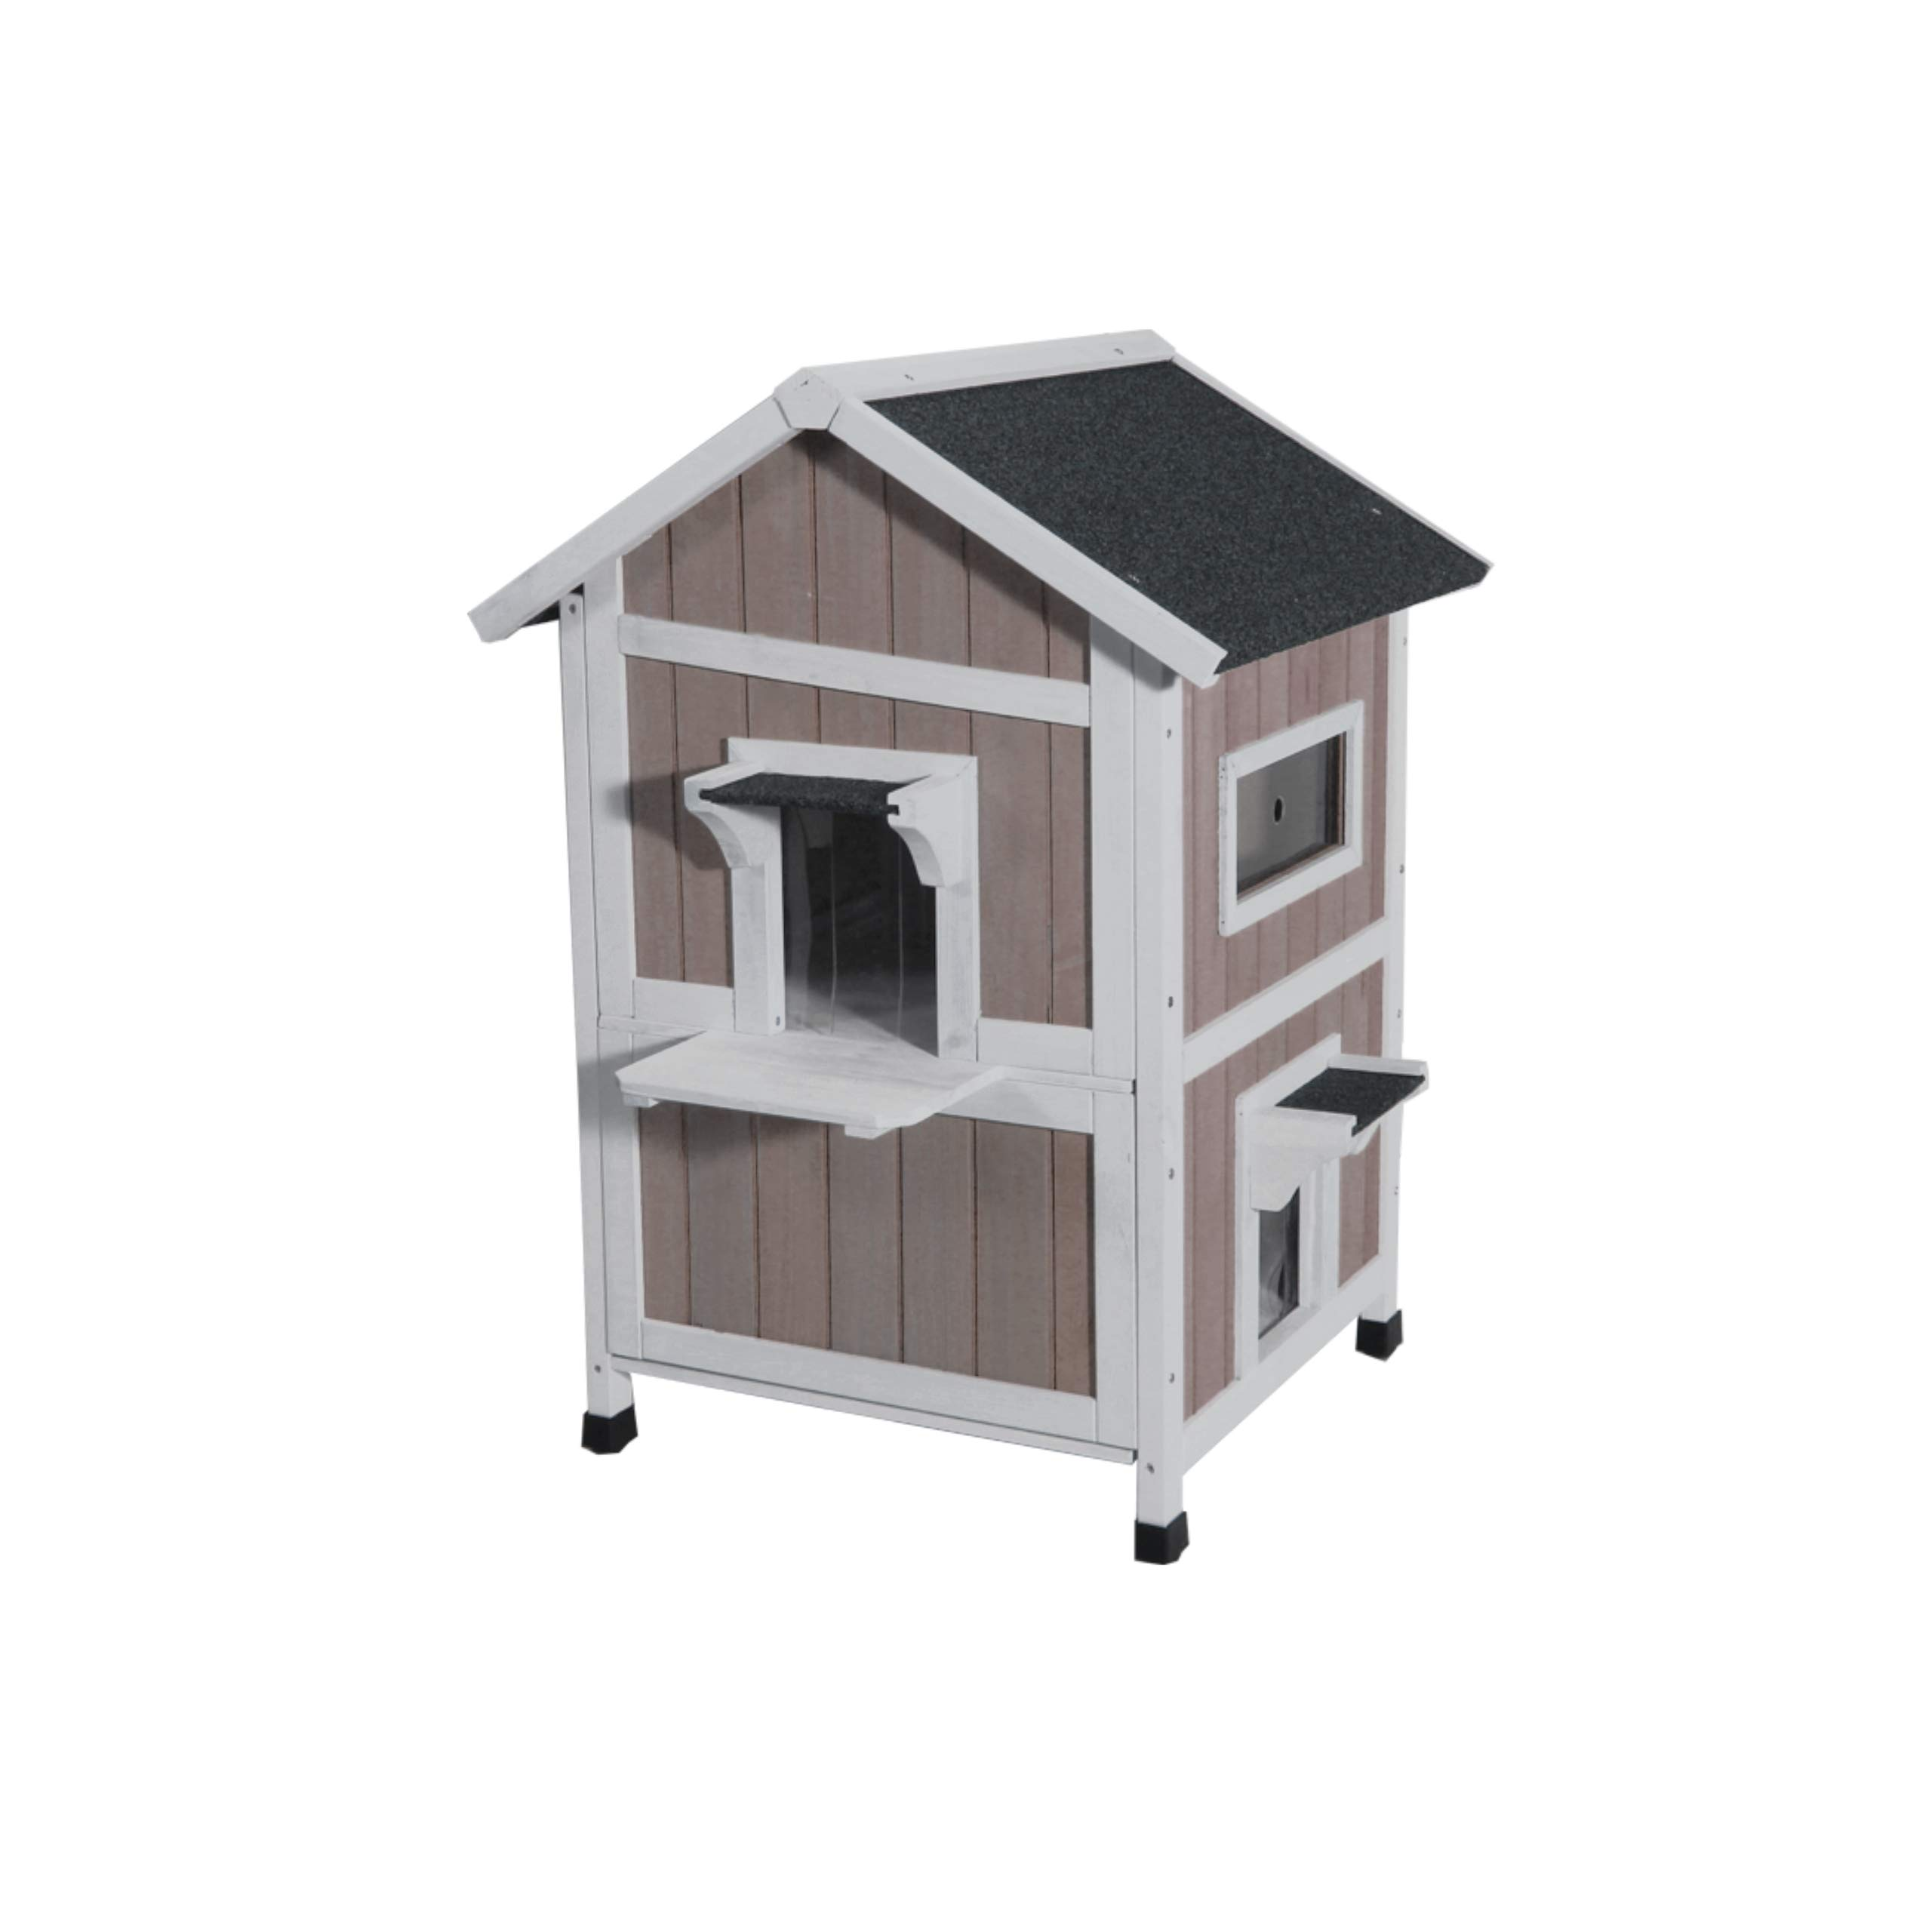 ROCKEVER Feral Cat Shelter Outdoor with Escape Door Rainproof Outside Cat House Two Story for Three-Four Cats Color Grey by ROCKEVER